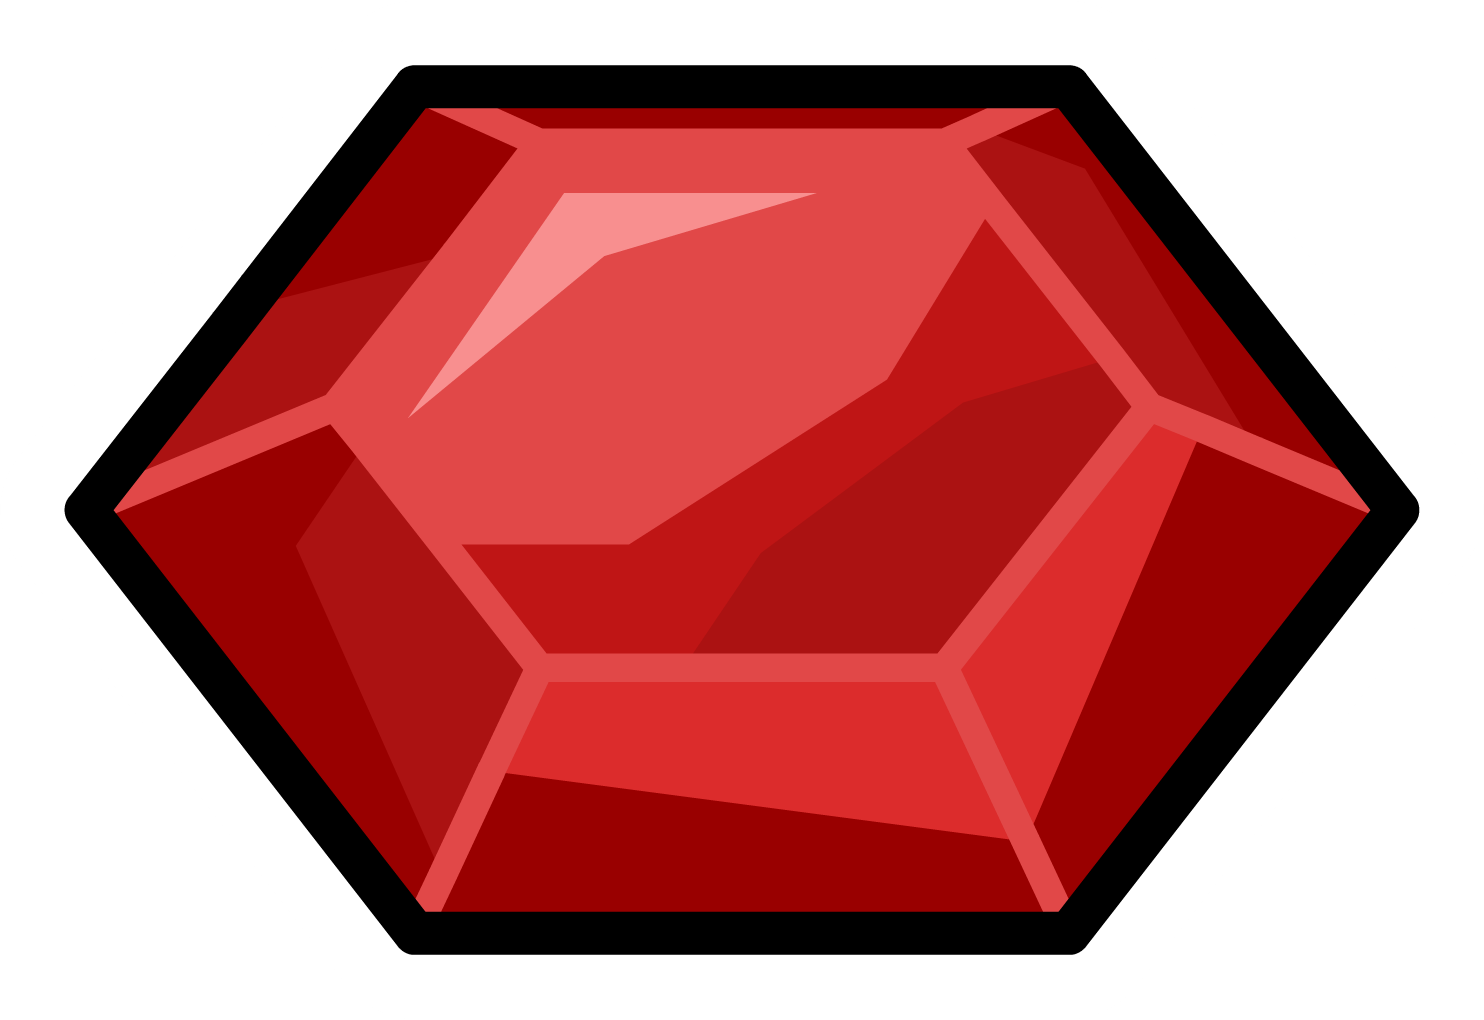 Free download of Ruby PNG Image Without Background